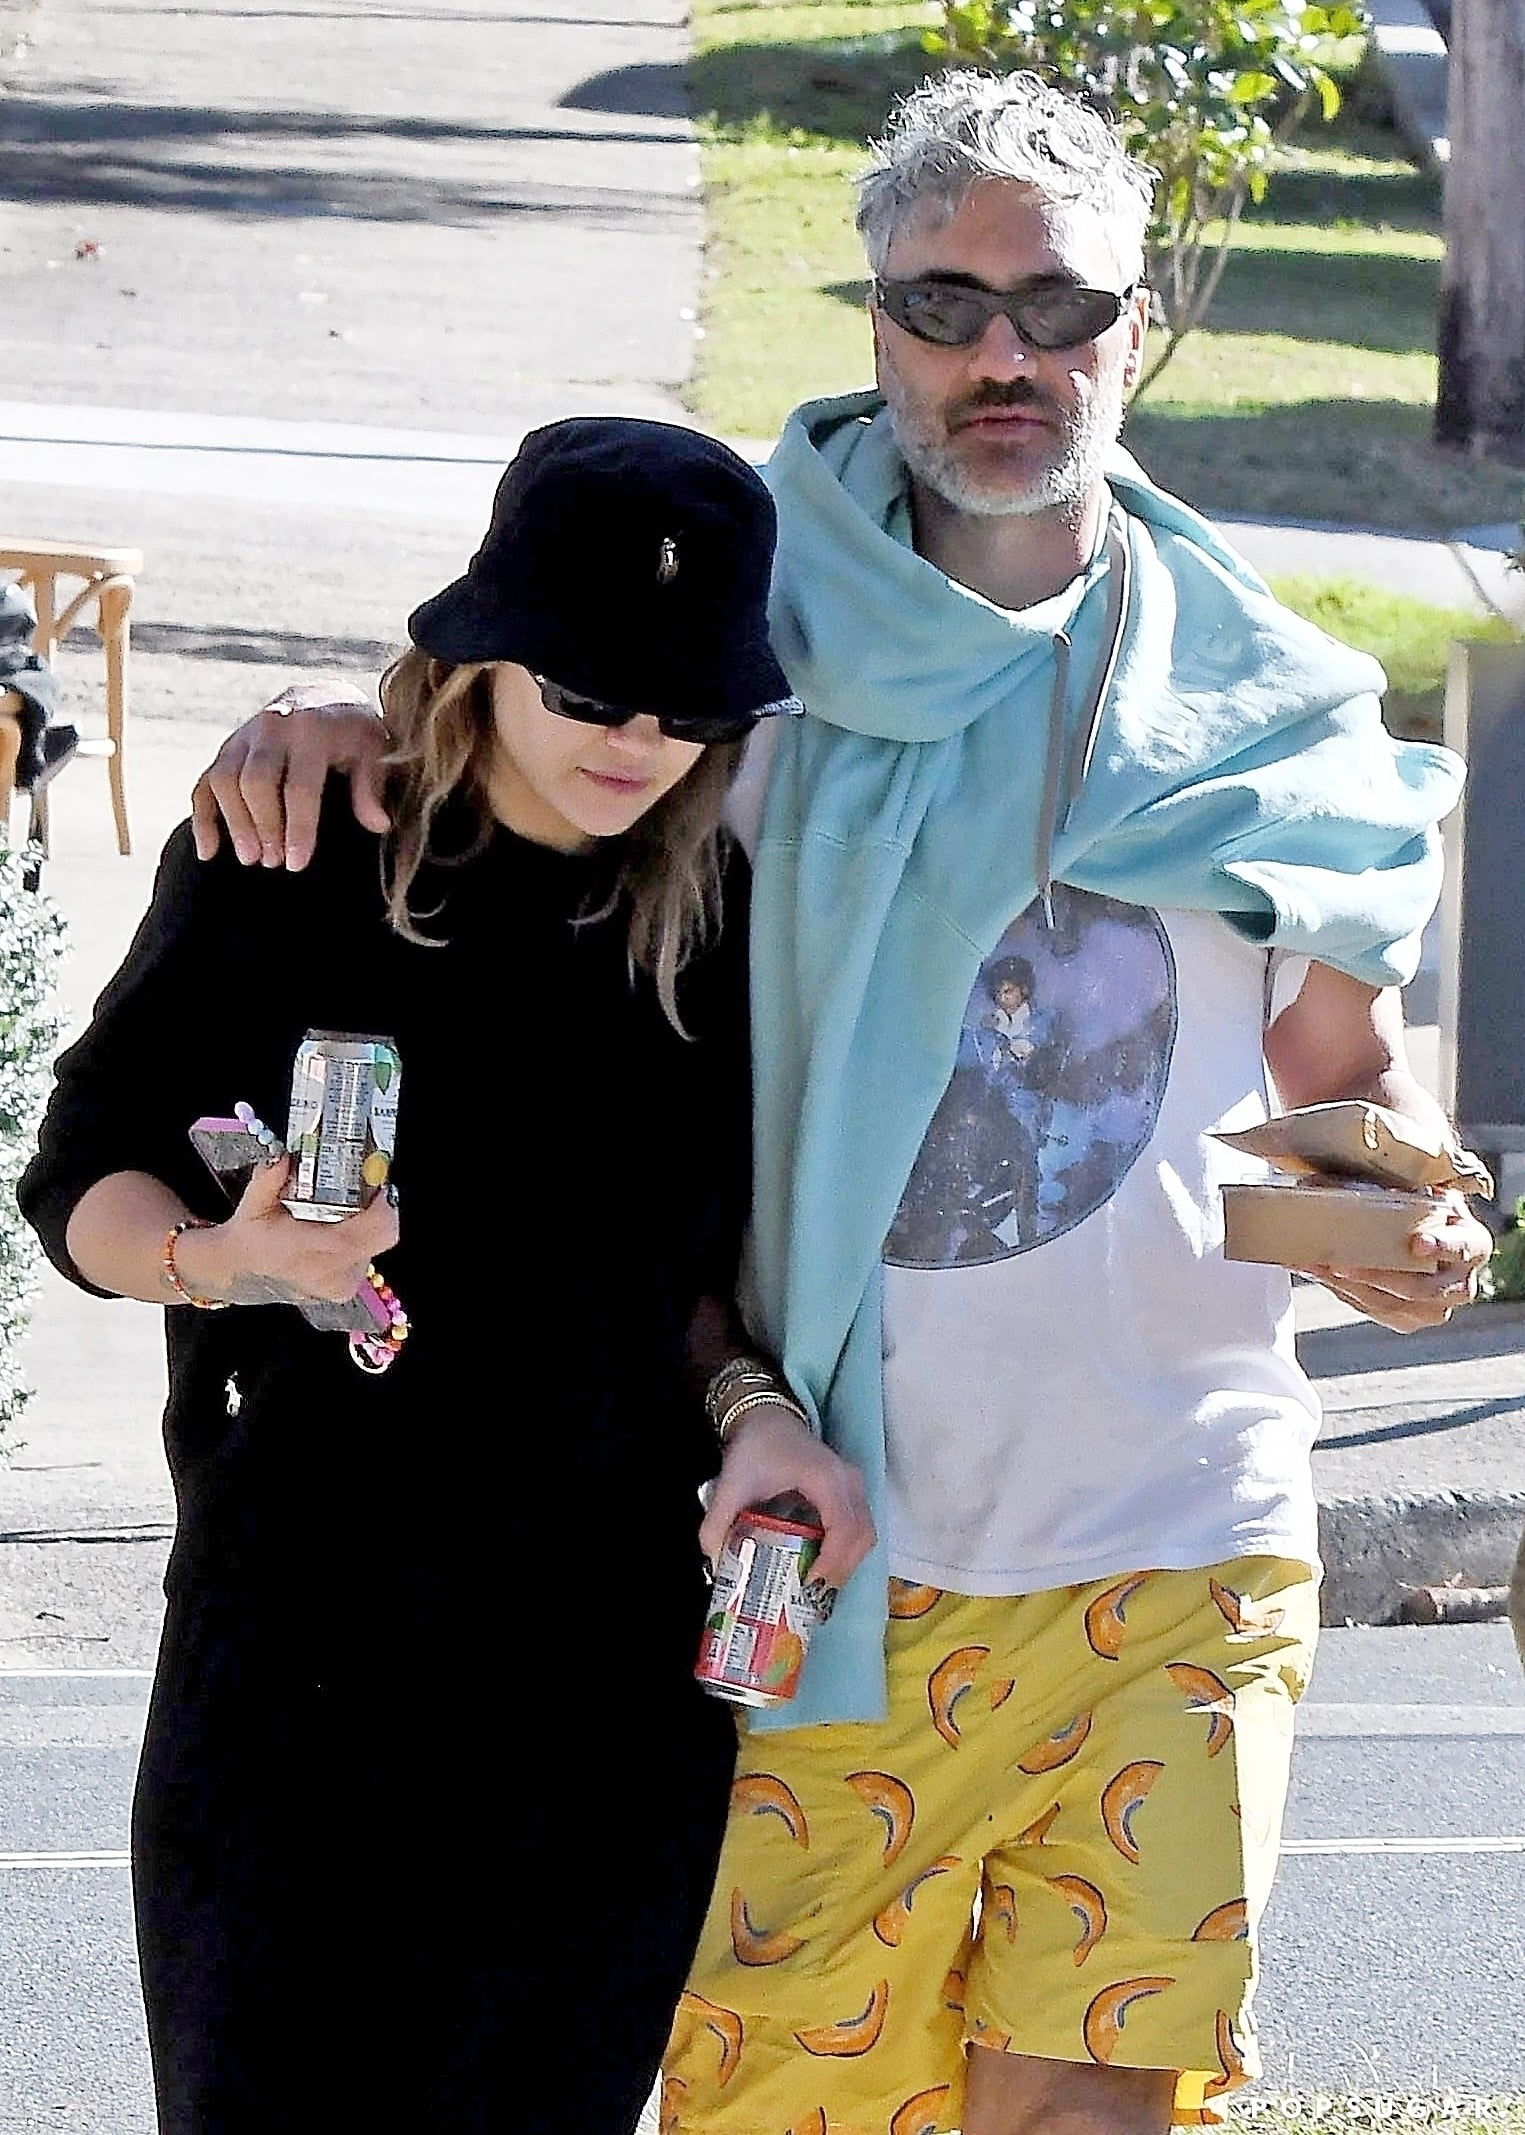 Sydney, AUSTRALIA  - New Couple Alert! Kiwi director Taika Waititi and British singer Rita Ora have apparently been dating for months. They are pictured together for the first time as a couple, having emerged from Taika's beachside home In Bondi Beach for breakfast today. The pair seemed very enamoured with each other as Rita playfully poked her tongue out at Taiki. They bought food and later Taiki held her hand tenderly before kissing her hand.Pictured: Rita Ora, Taika Waititi BACKGRID USA 17 MAY 2021 BYLINE MUST READ: MTRX / BACKGRIDUSA: +1 310 798 9111 / usasales@backgrid.comUK: +44 208 344 2007 / uksales@backgrid.com*UK Clients - Pictures Containing ChildrenPlease Pixelate Face Prior To Publication*